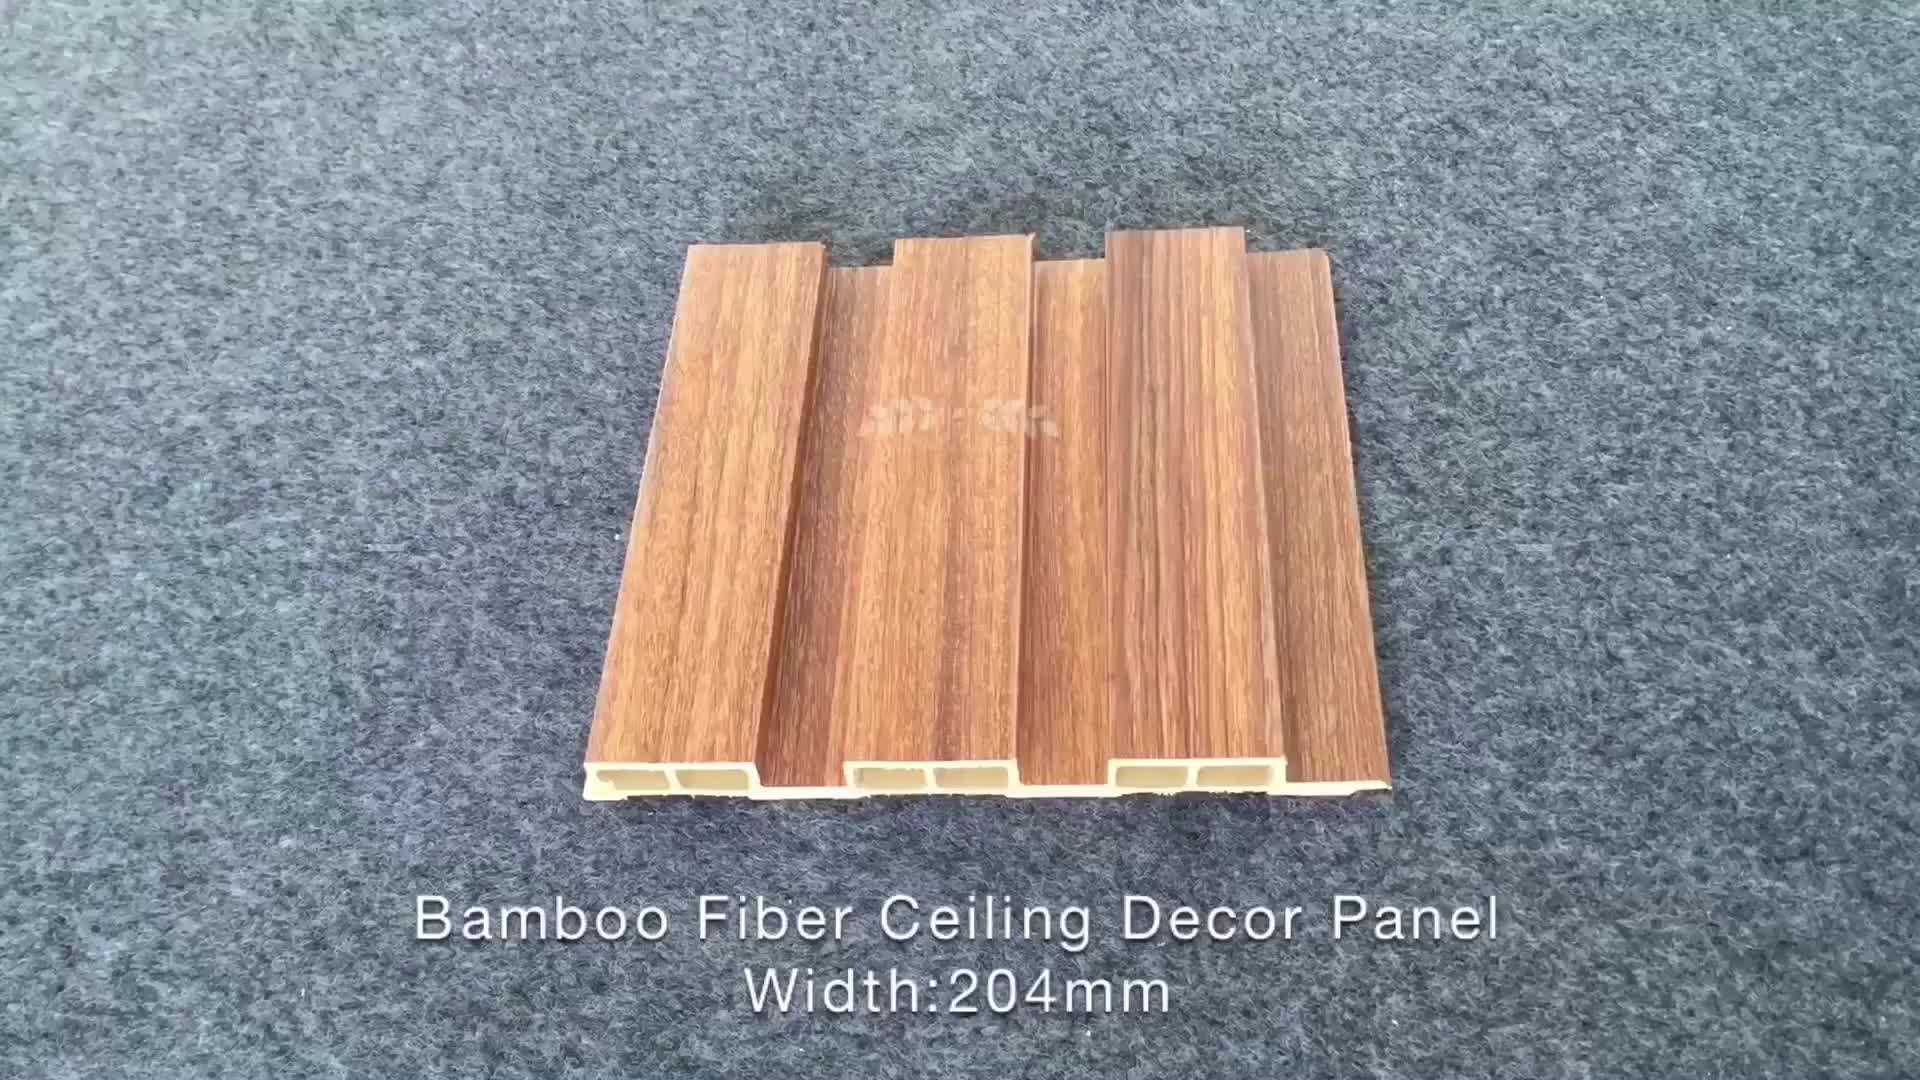 Wood grain customized design pvc wpc ceiling panel suspended wood grain customized design pvc wpc ceiling panel suspended ceiling tiles dailygadgetfo Image collections